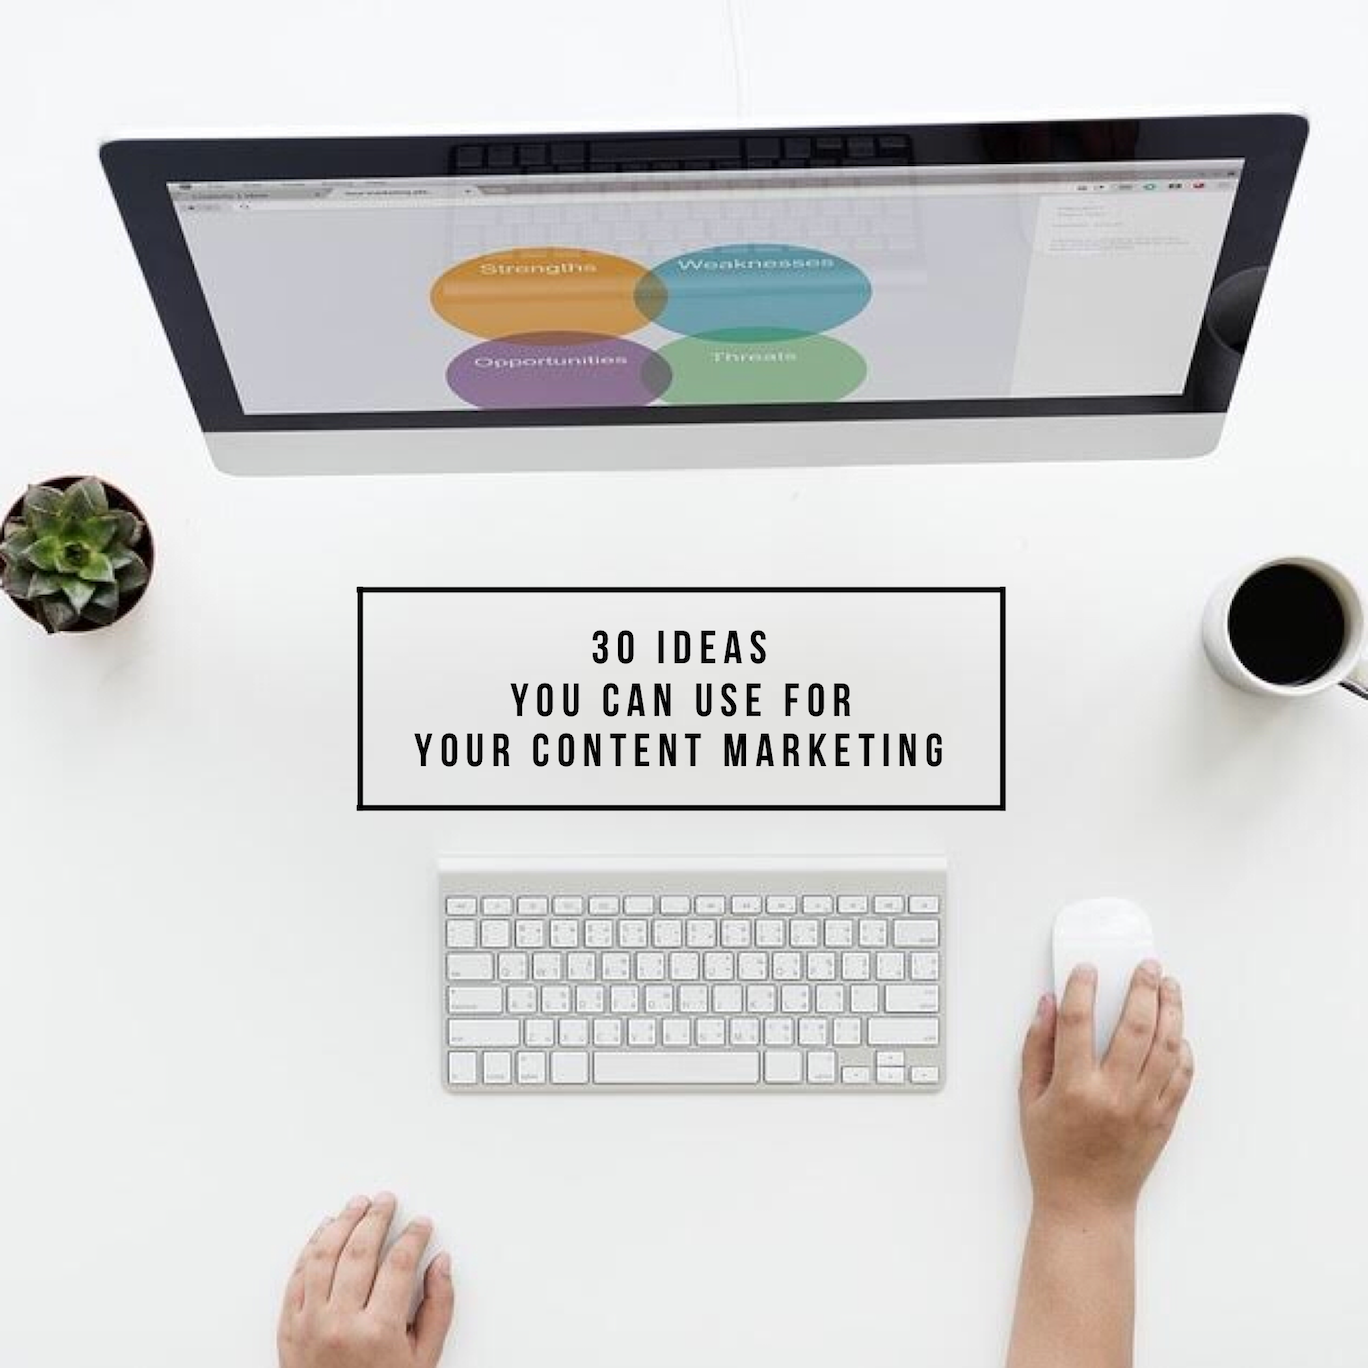 30 ideas you can use for content marketing.PNG